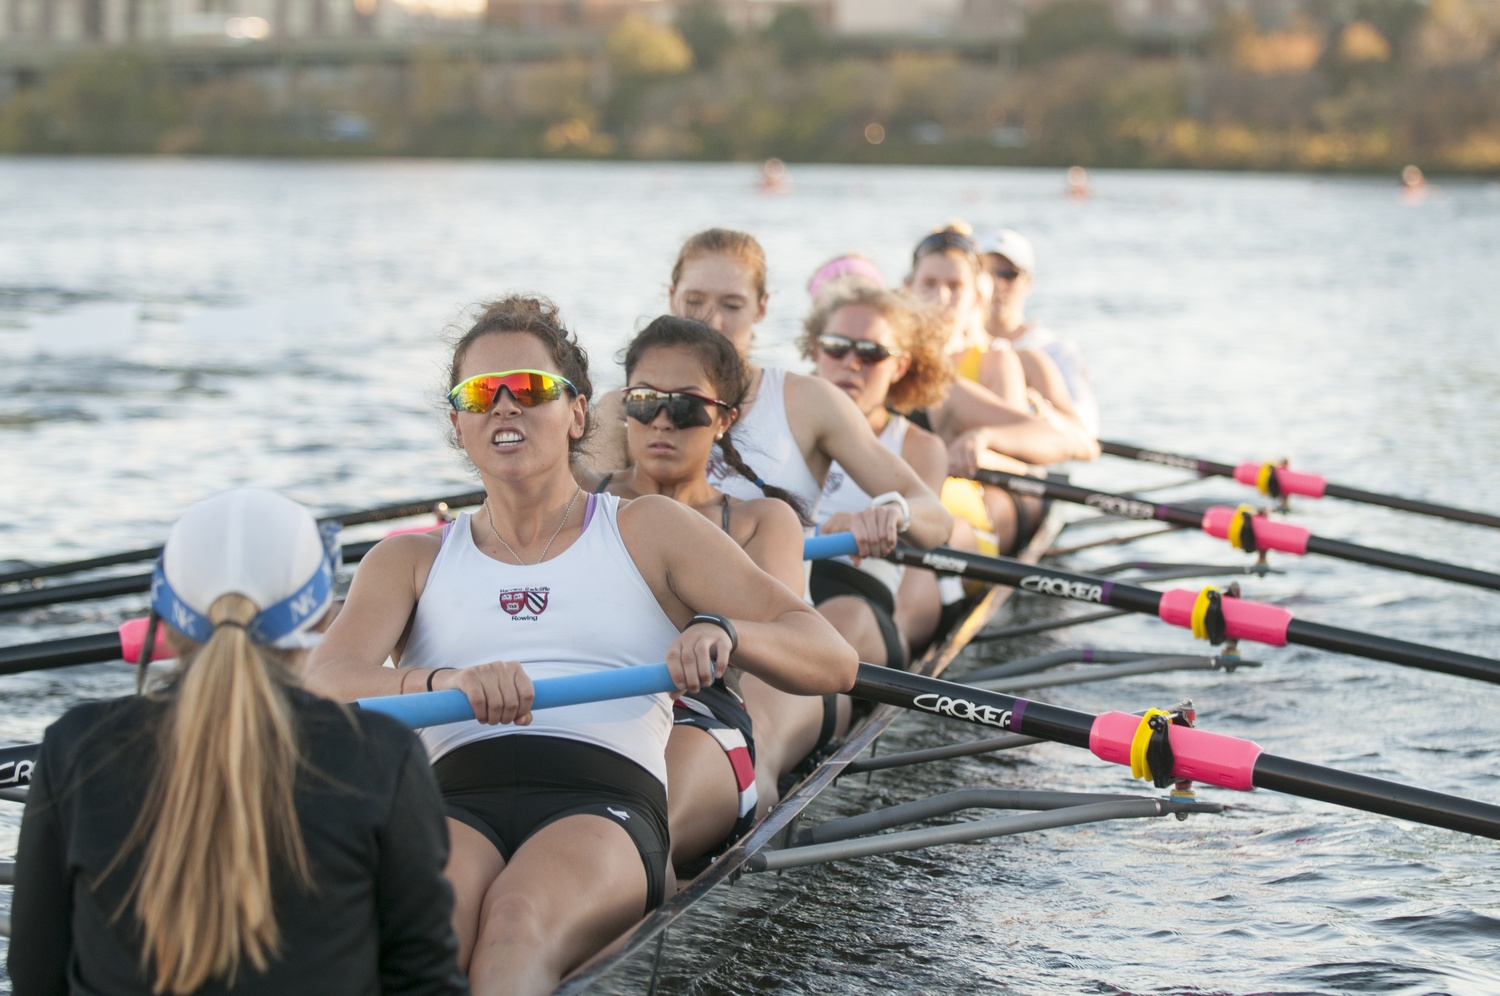 In the 10 races, the Harvard-Radcliffe heavyweight crew defeated Michigan State in four but dropped all five to Ohio State.